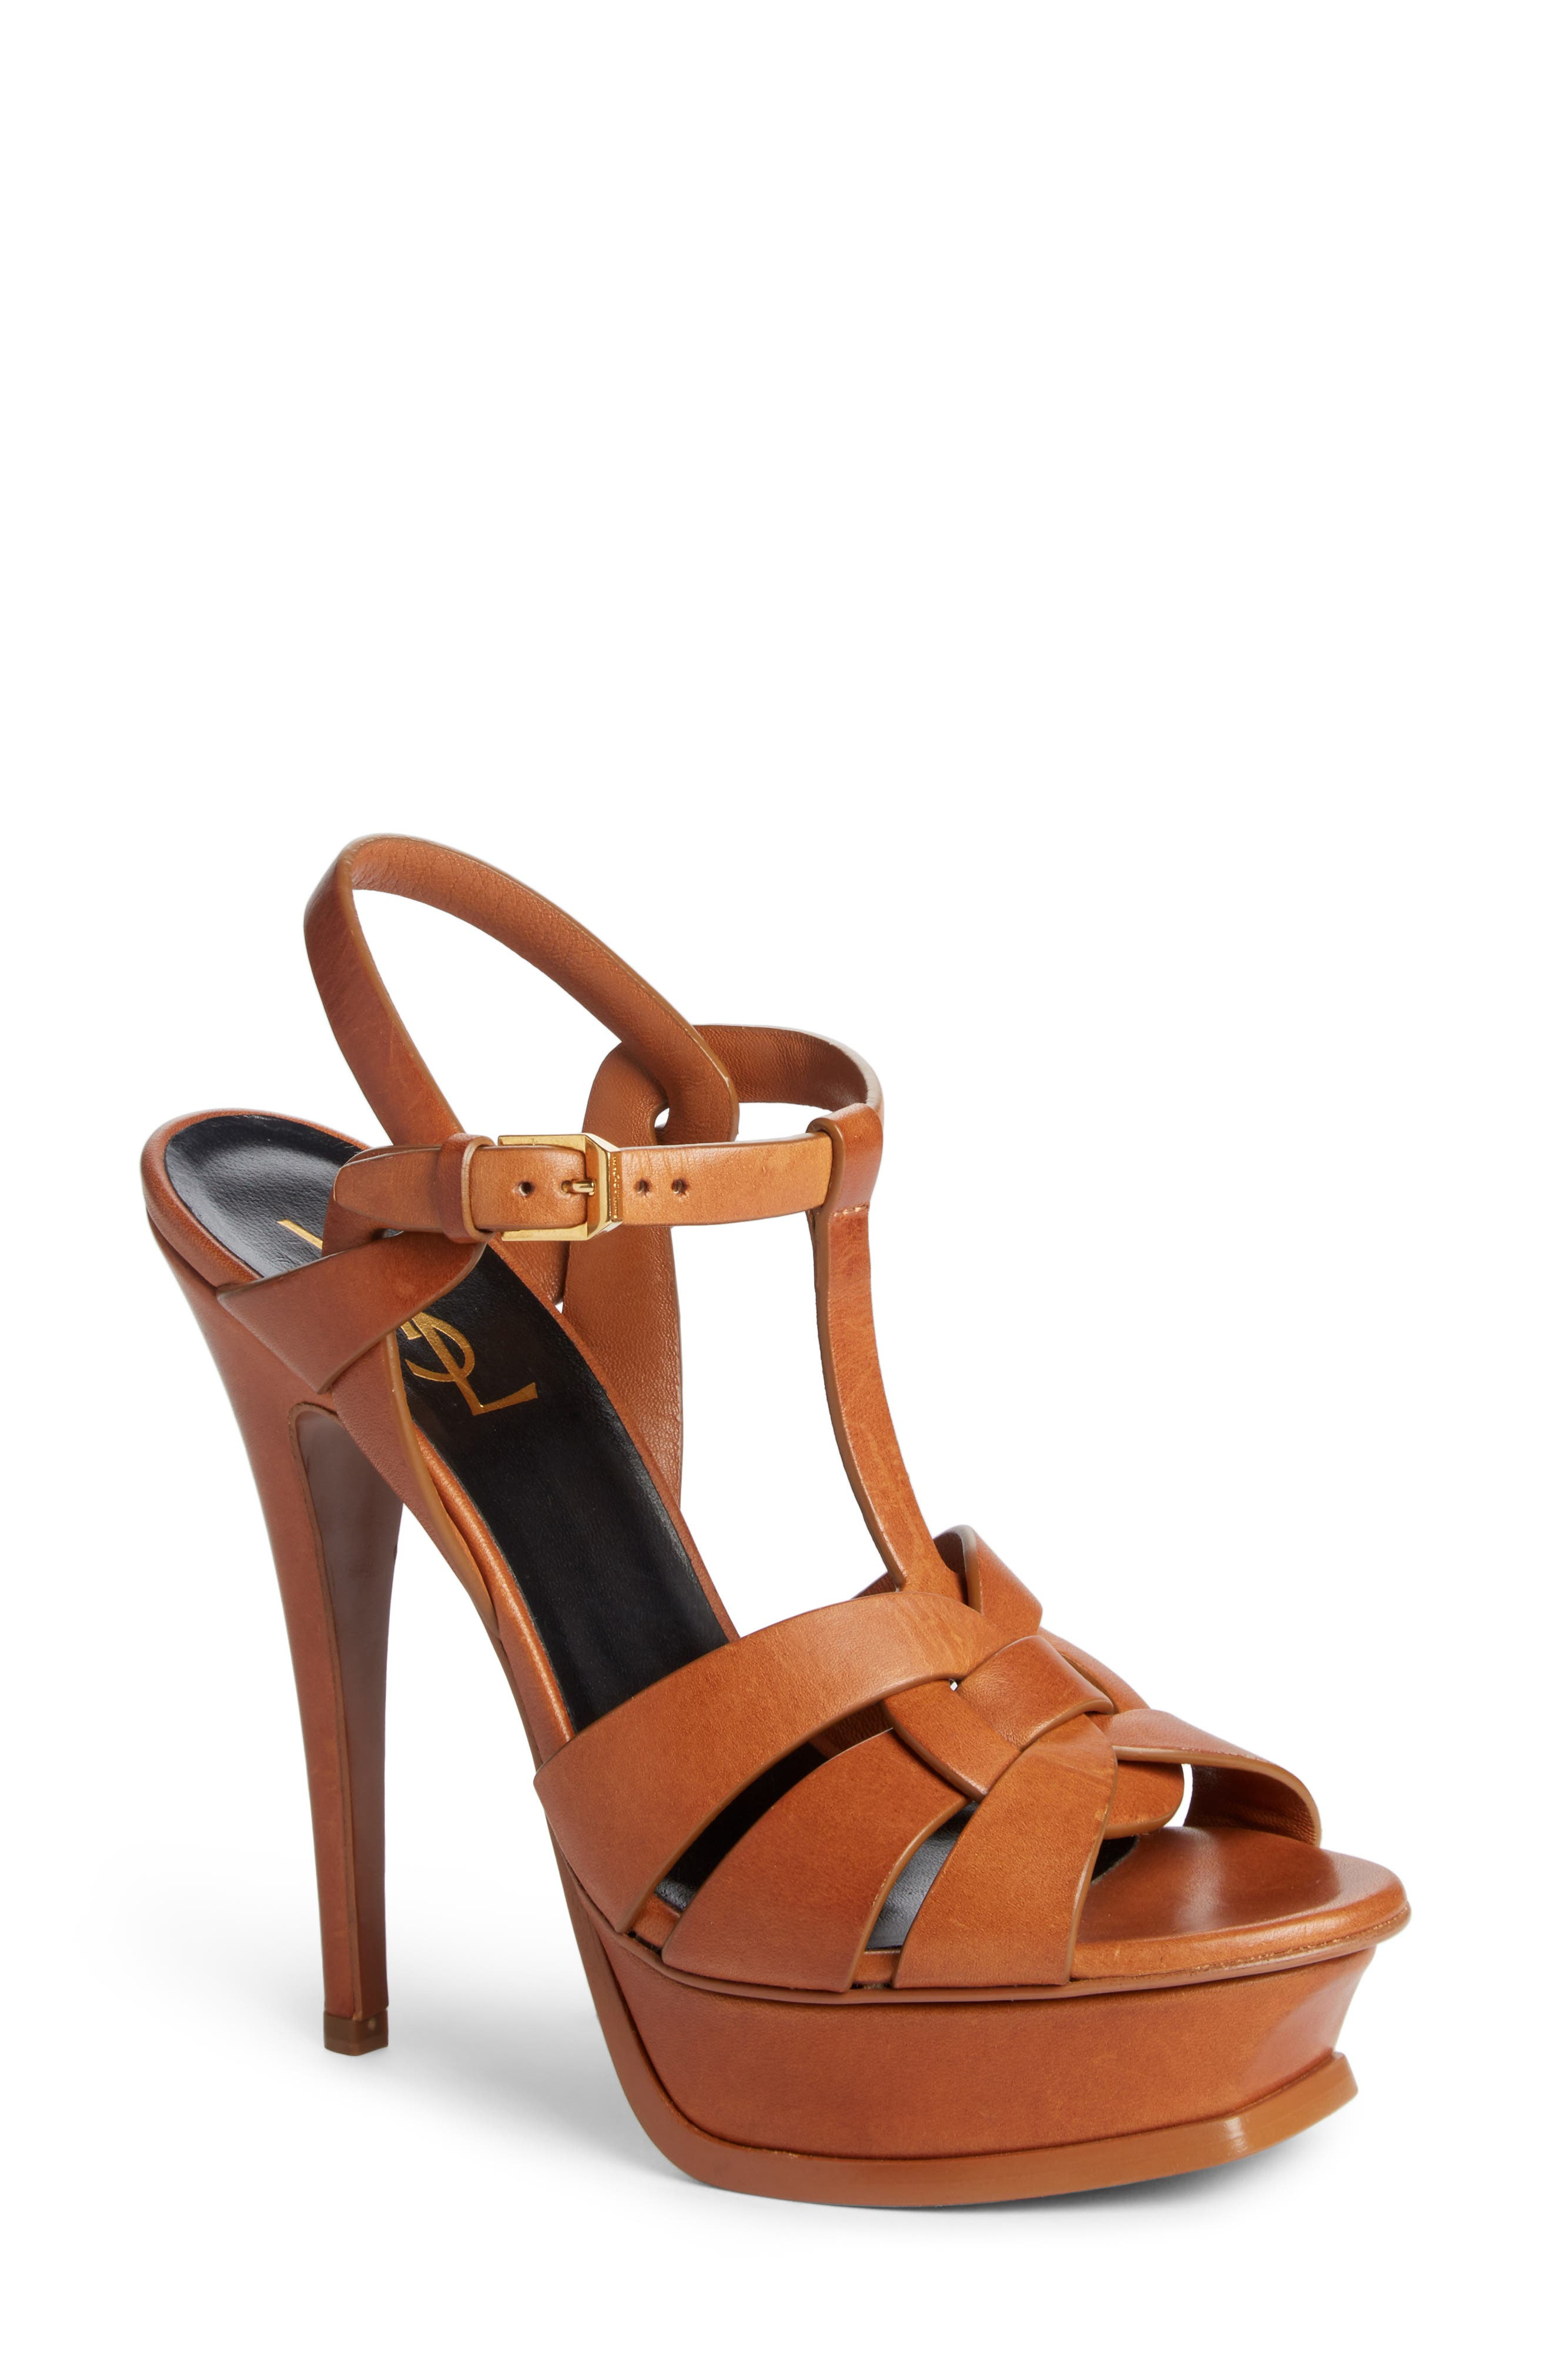 Main Image - Saint Laurent 'Tribute' Sandal (Women)